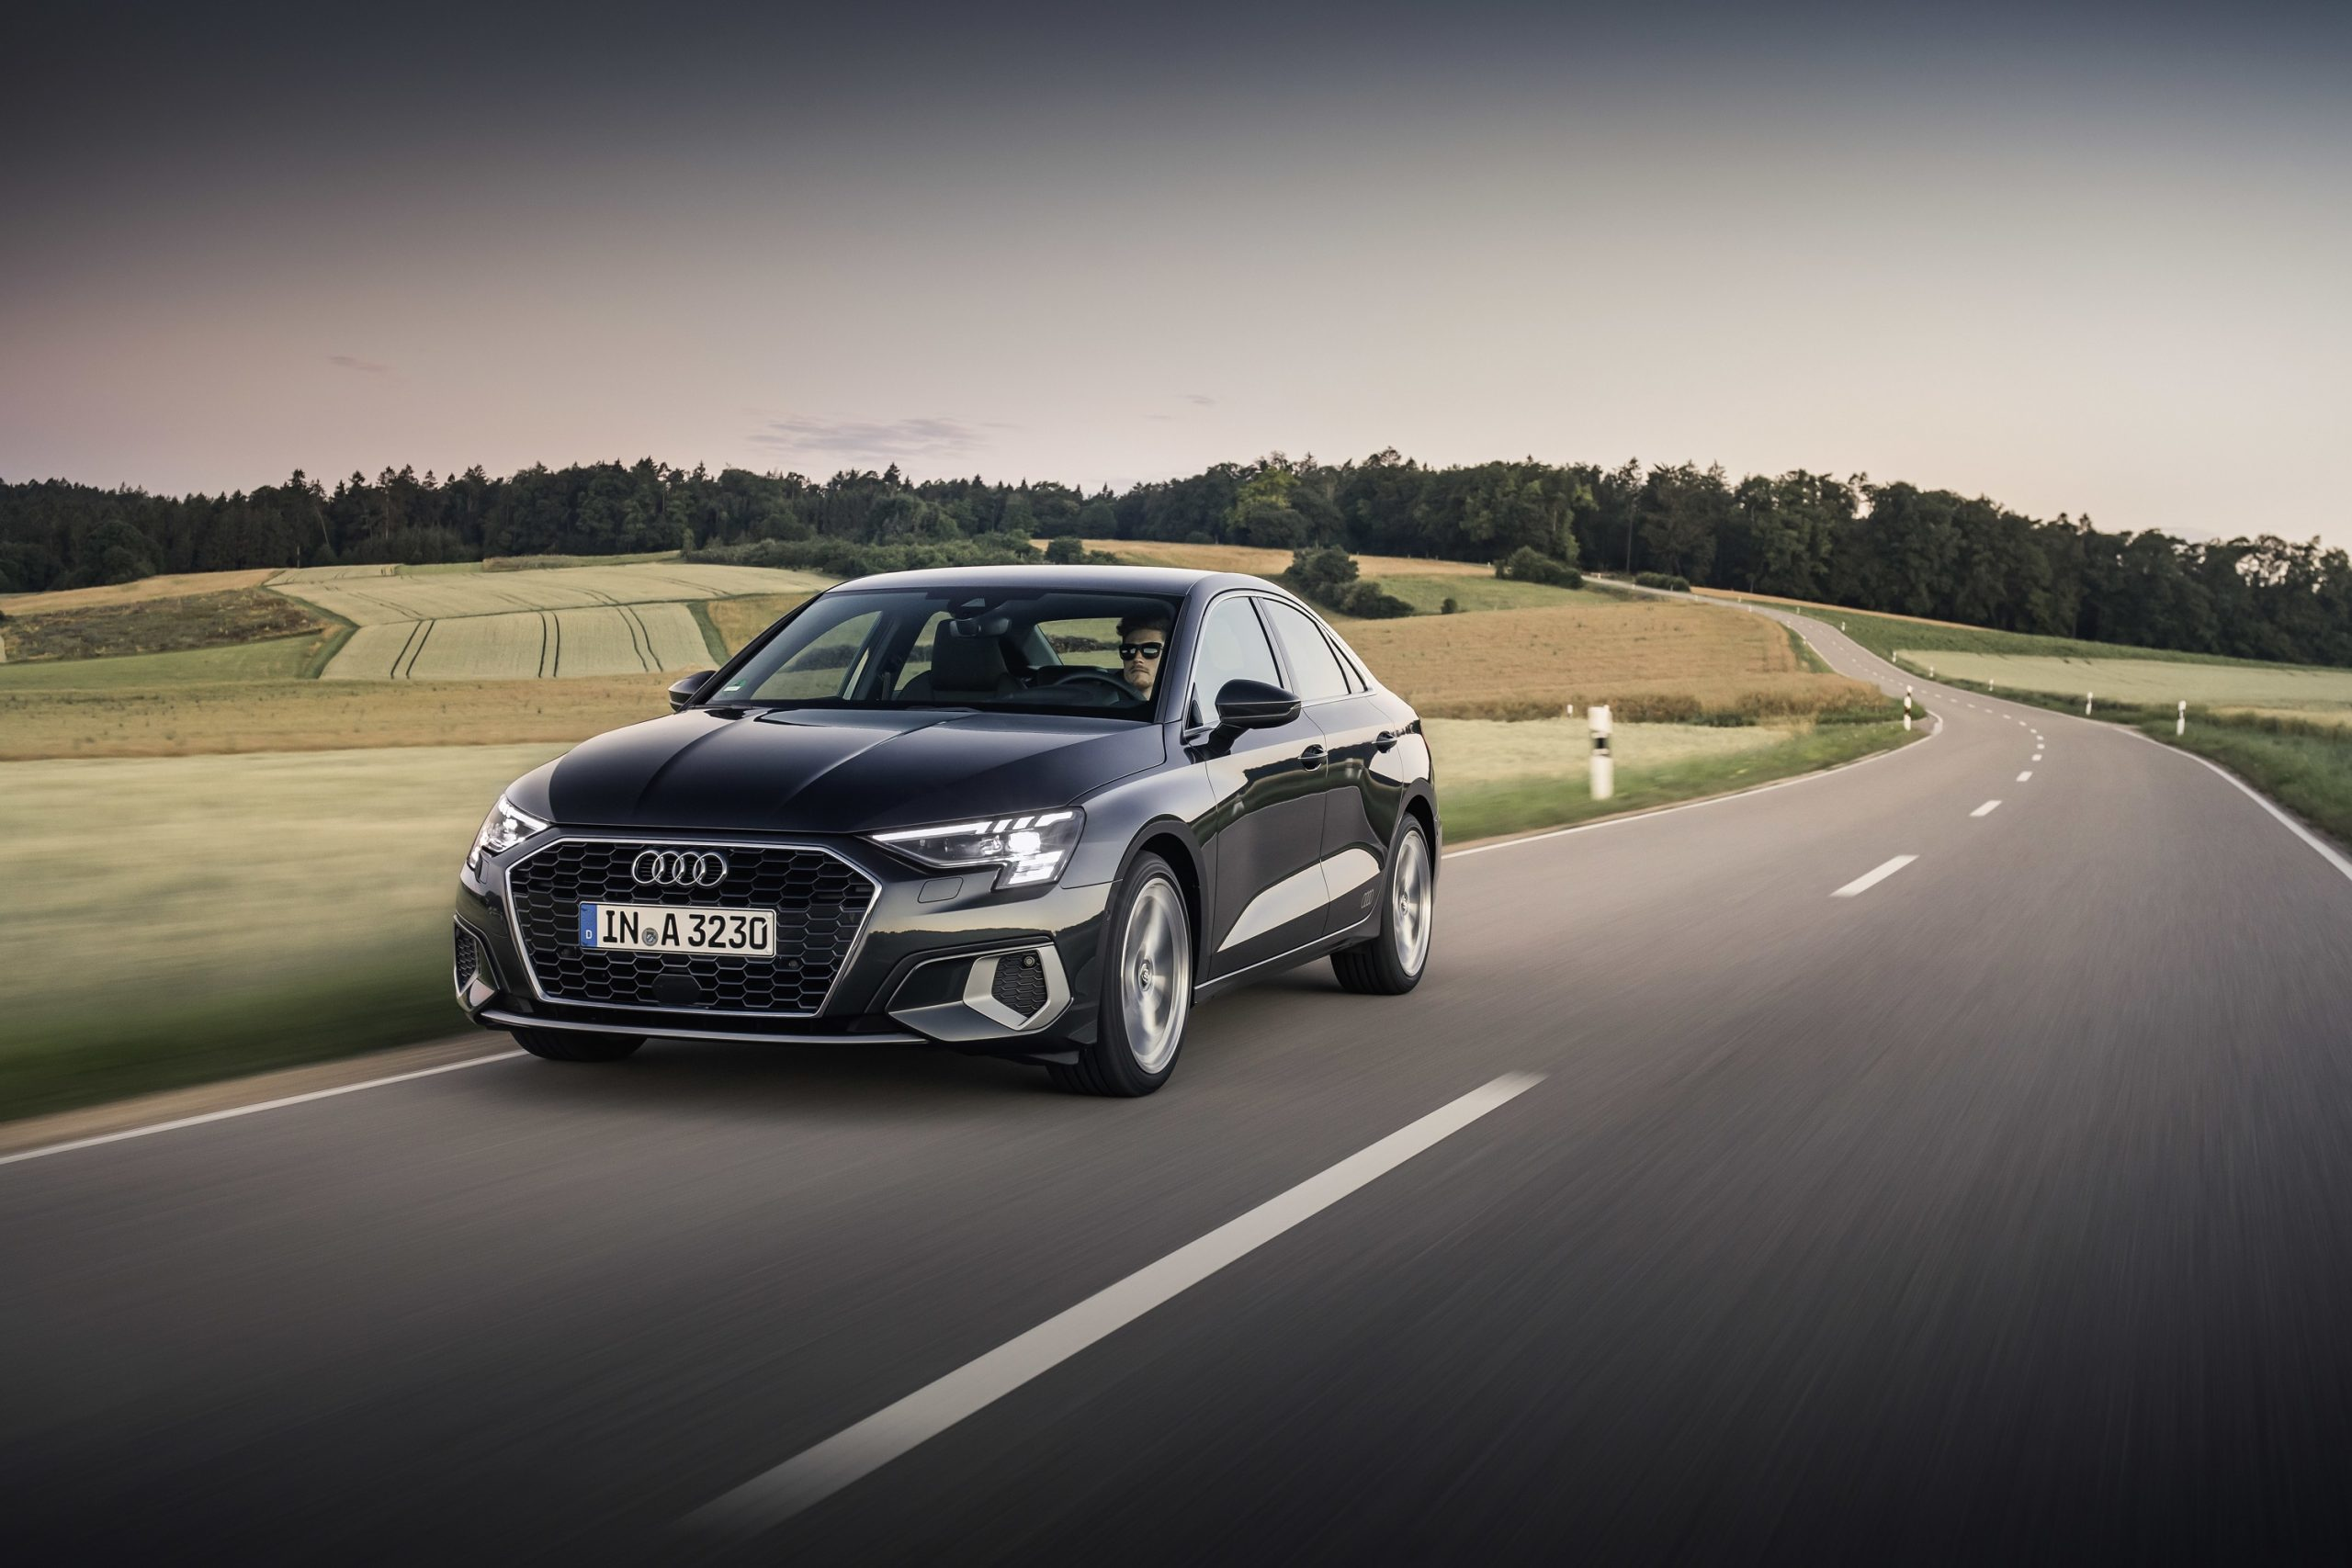 The 2022 Audi A3 in grey on a country road, shot from the 3/4 angle